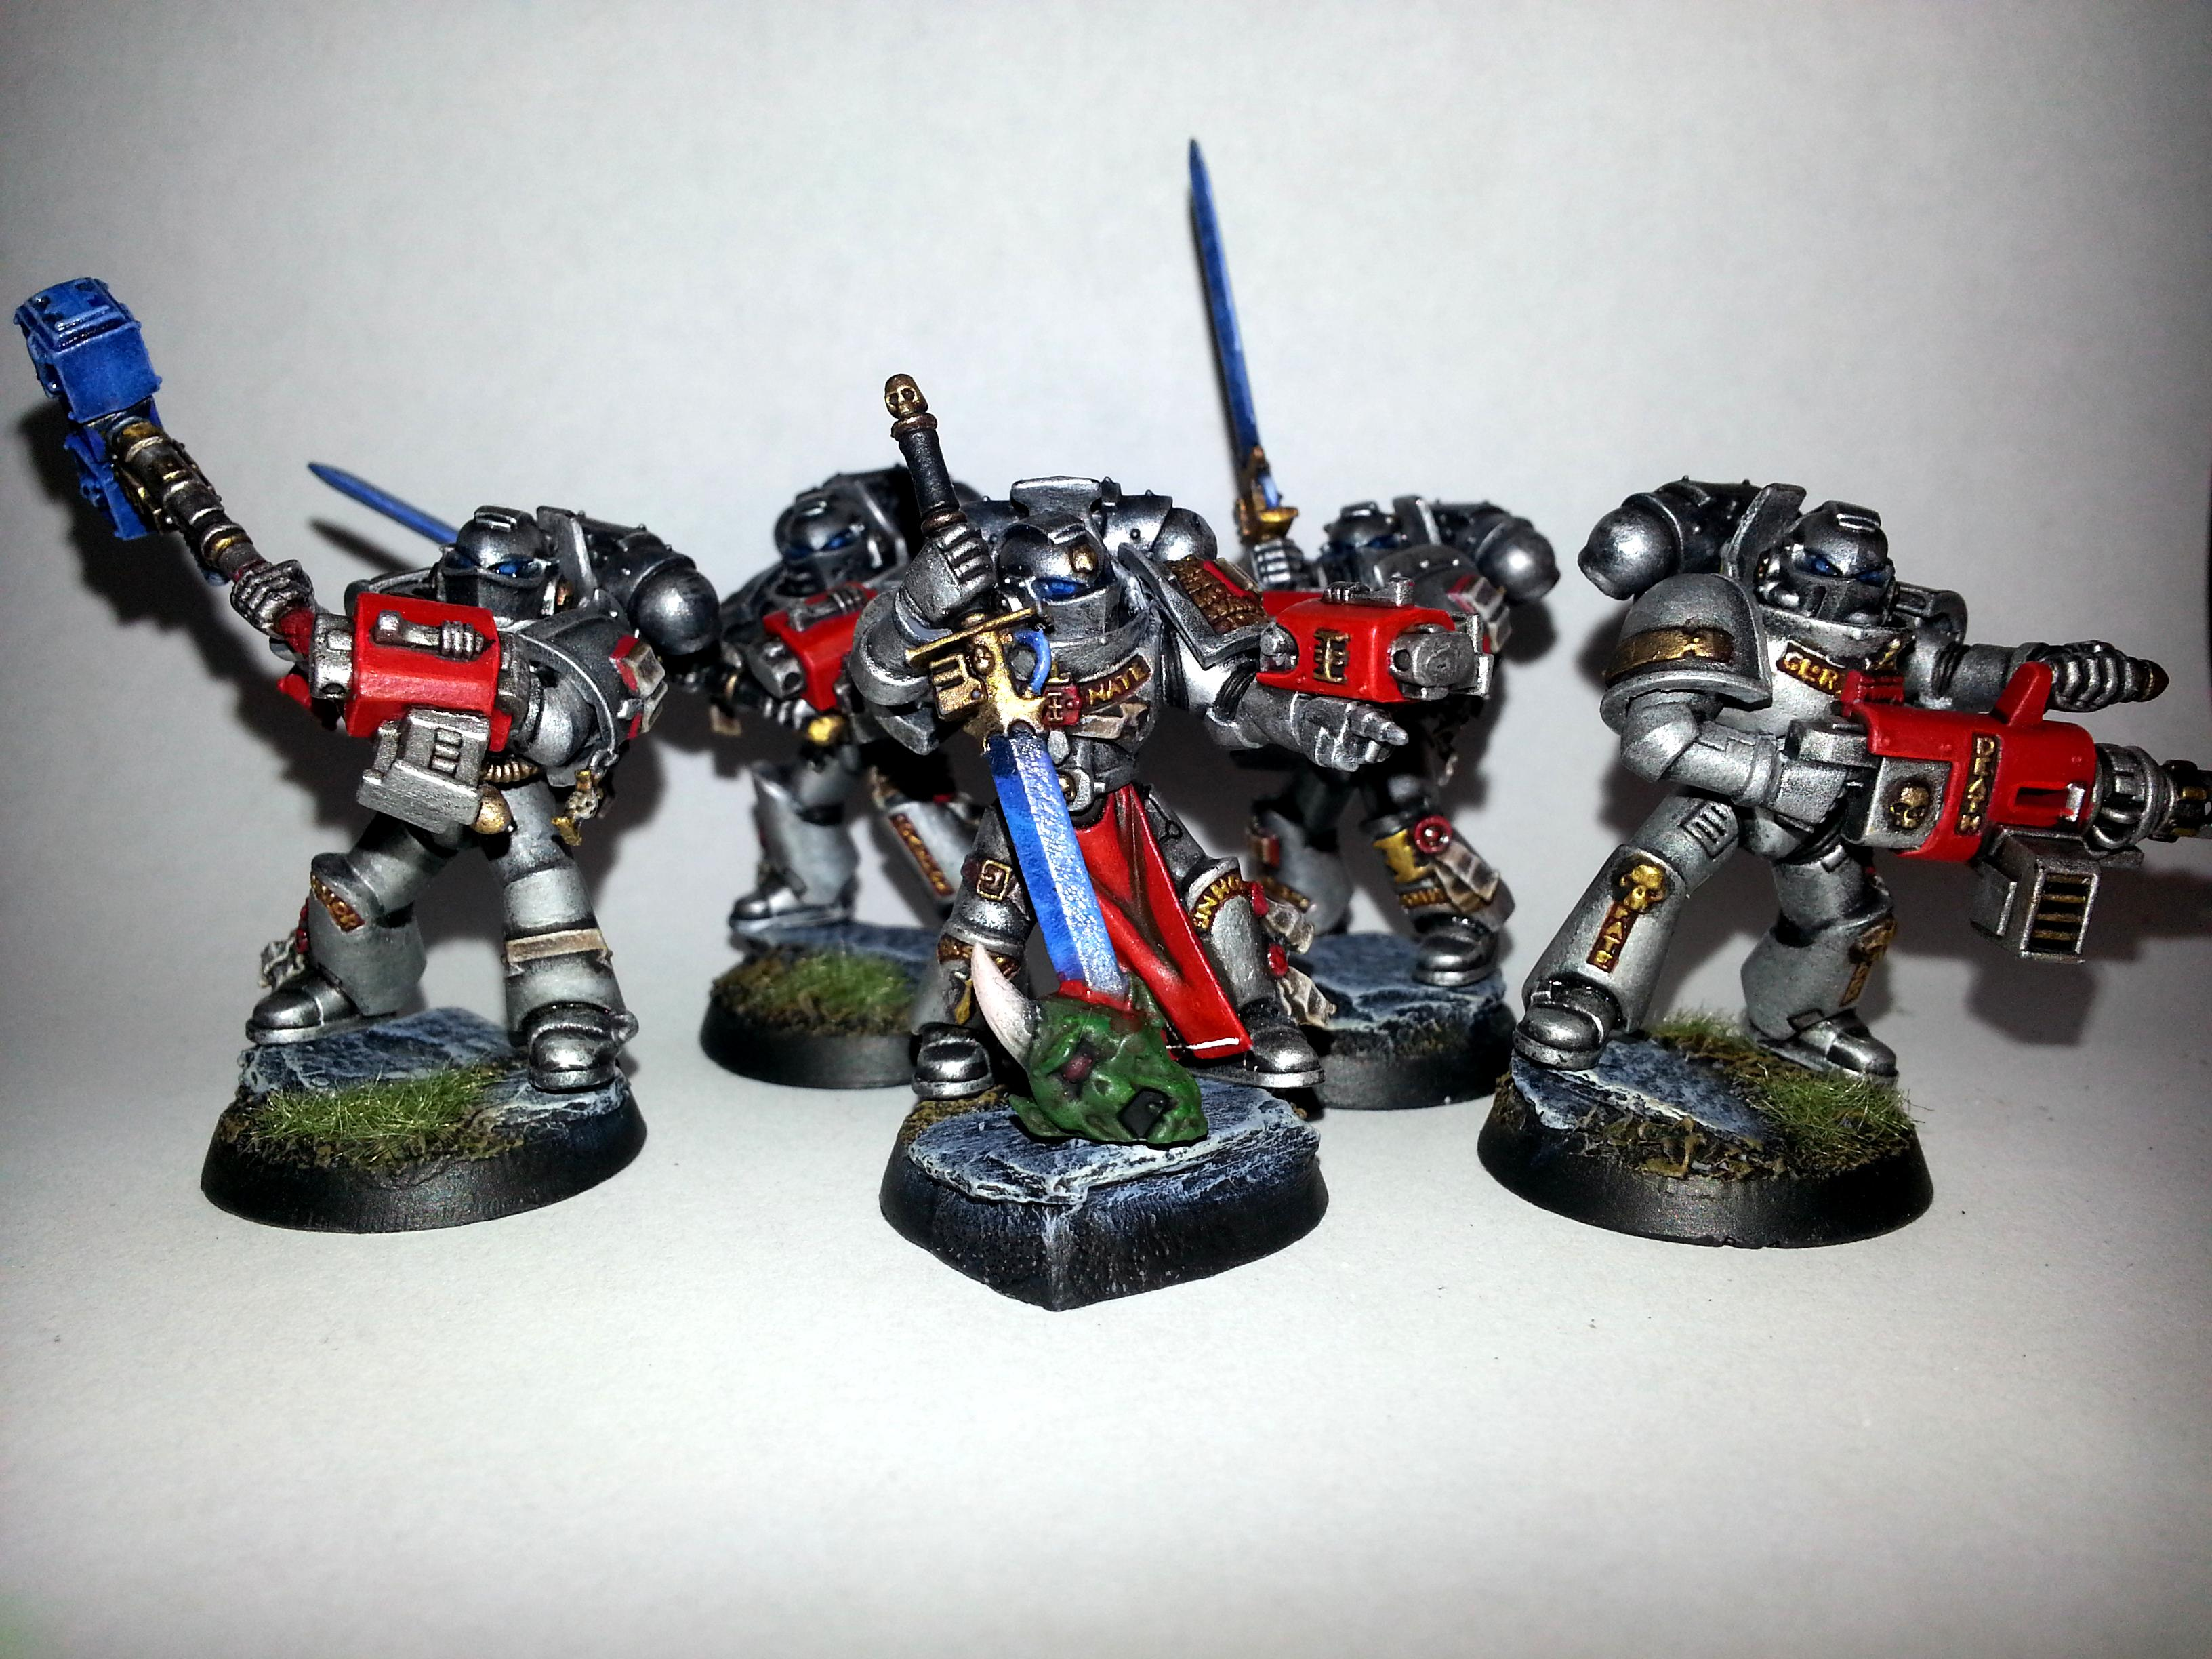 Force Weapons, Gk, Grey Knights, Inquisition, Power Weapons, Space Marines, Strike Squad, Warhammer 40,000